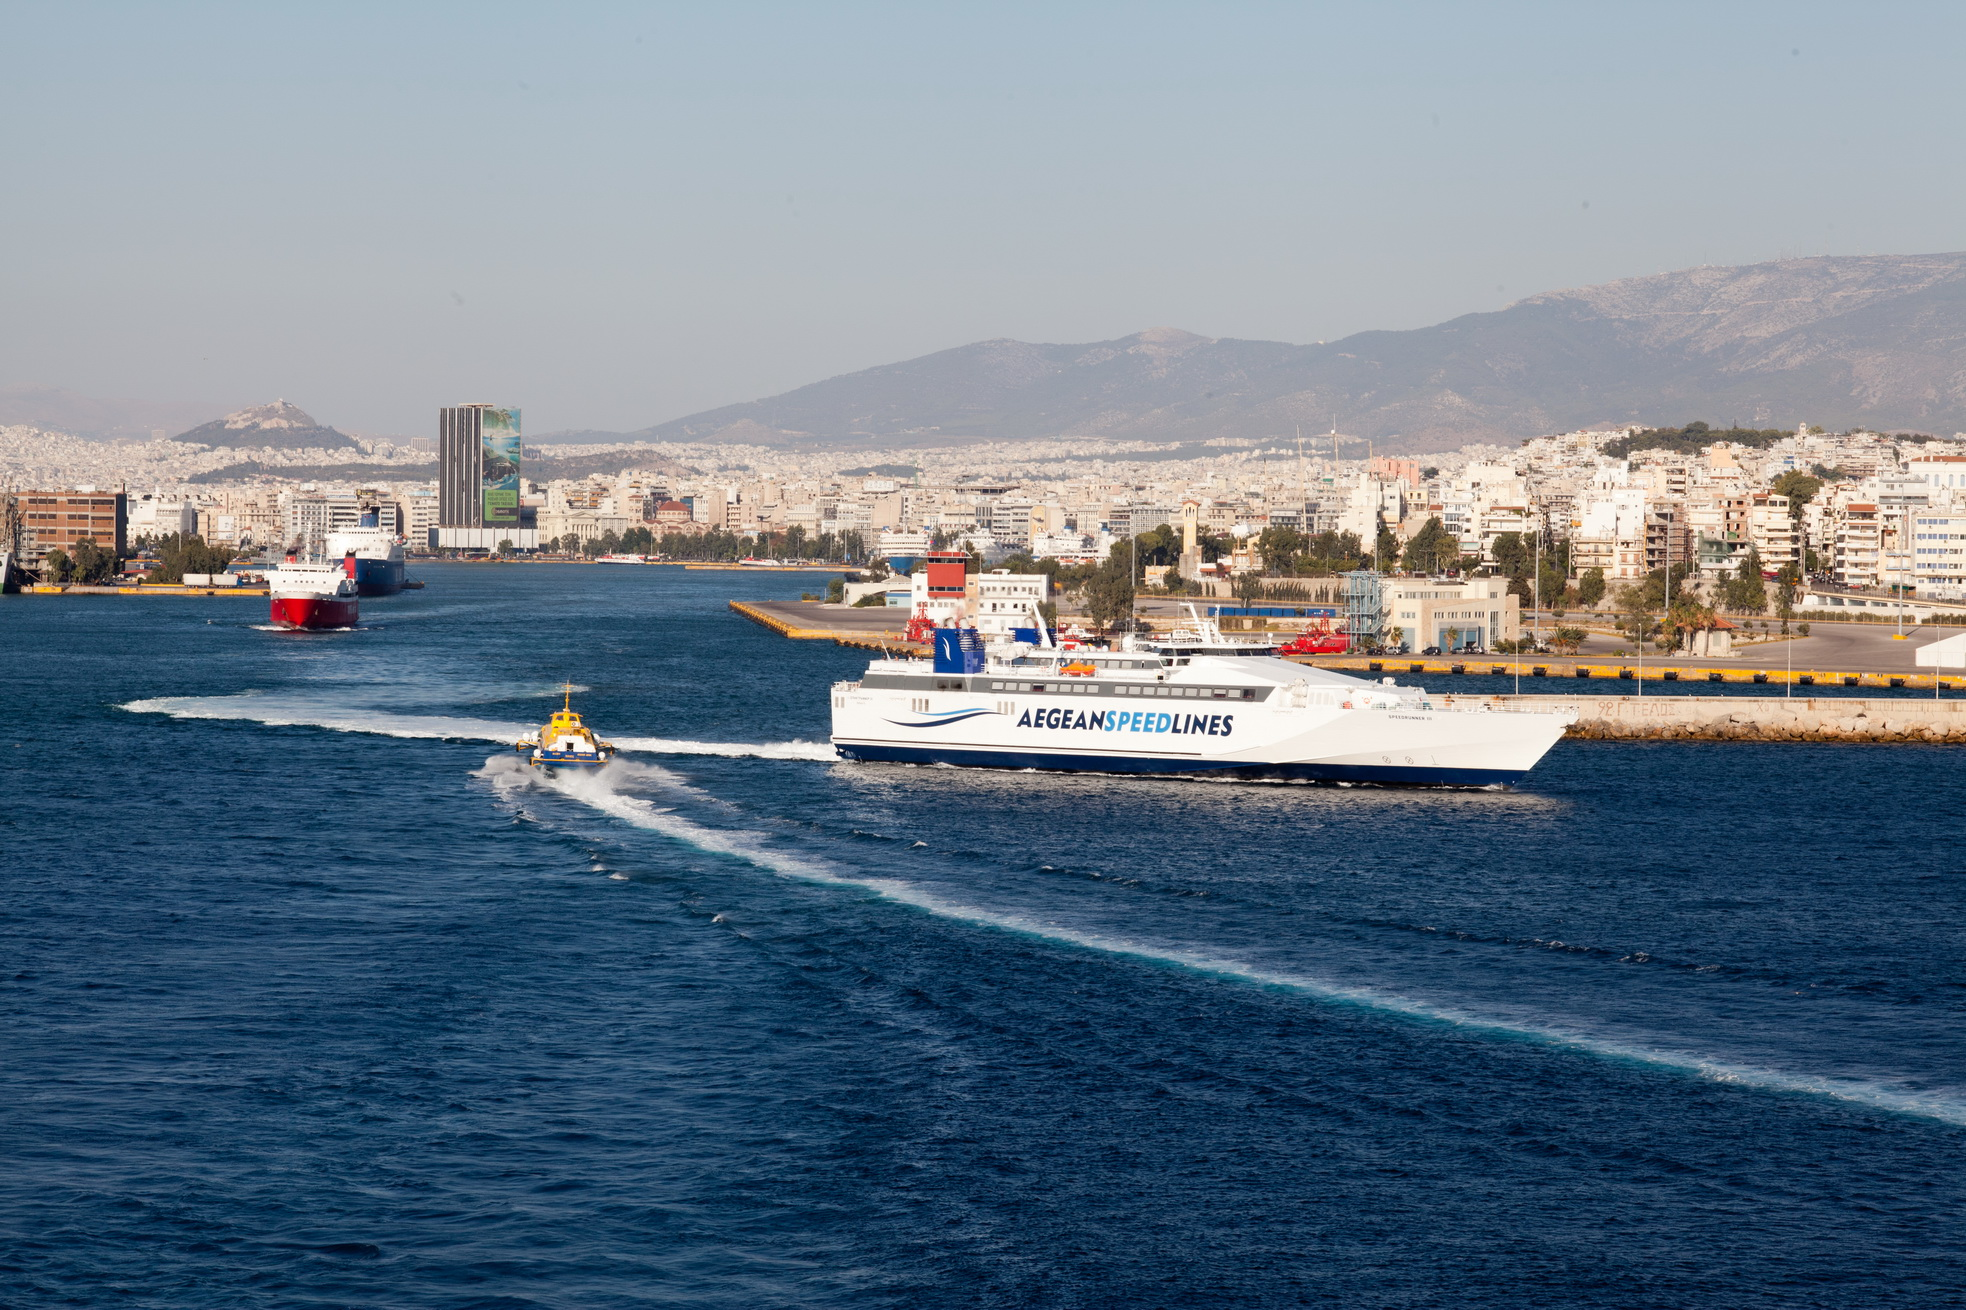 MS Speedrunner III IMO 9141871 Aegean Speed Lines leaving Piraeus Port of Athens Greece 01